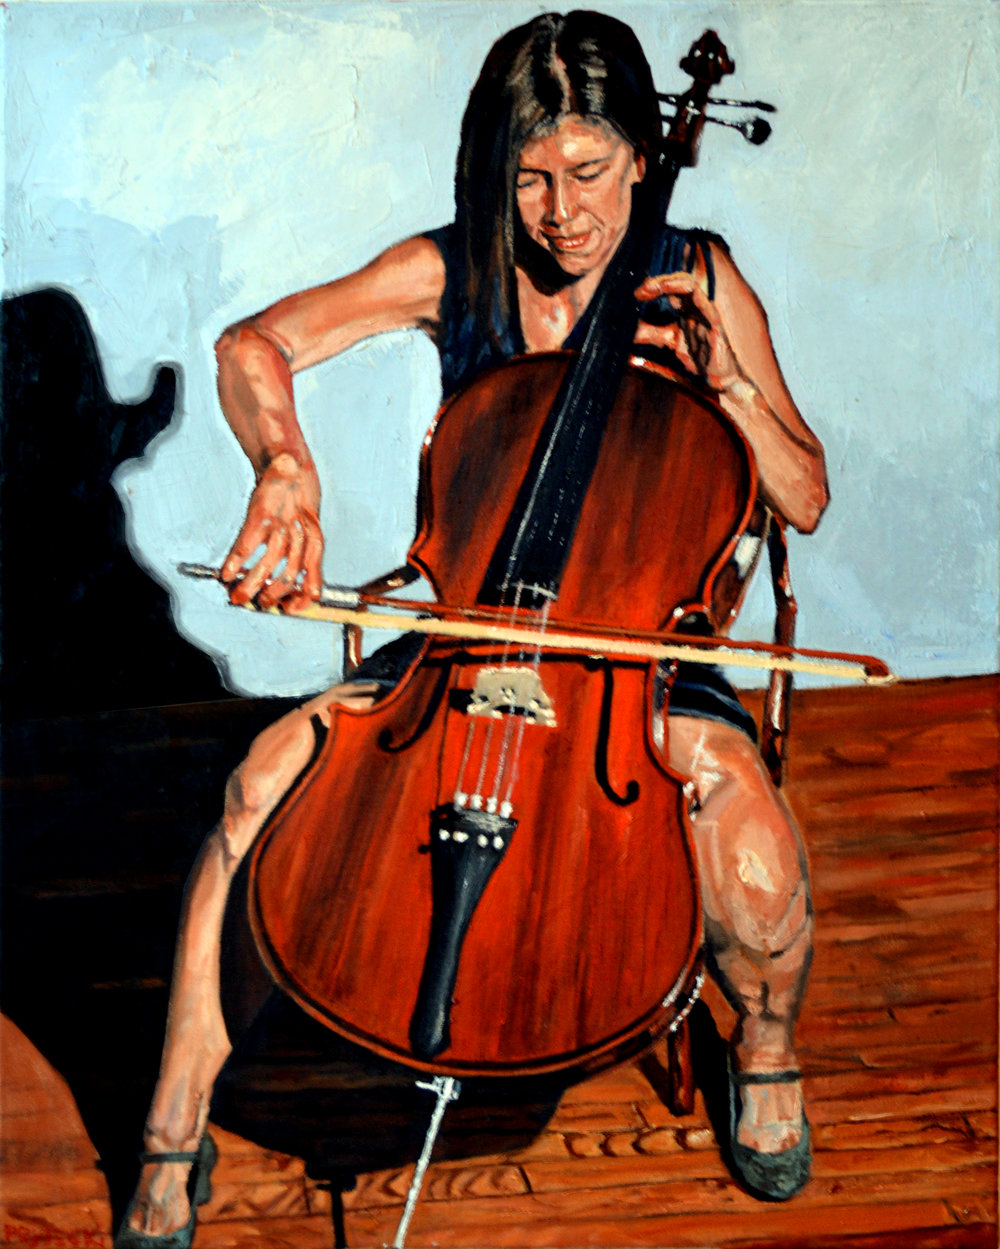 Tanya Playing the Cello